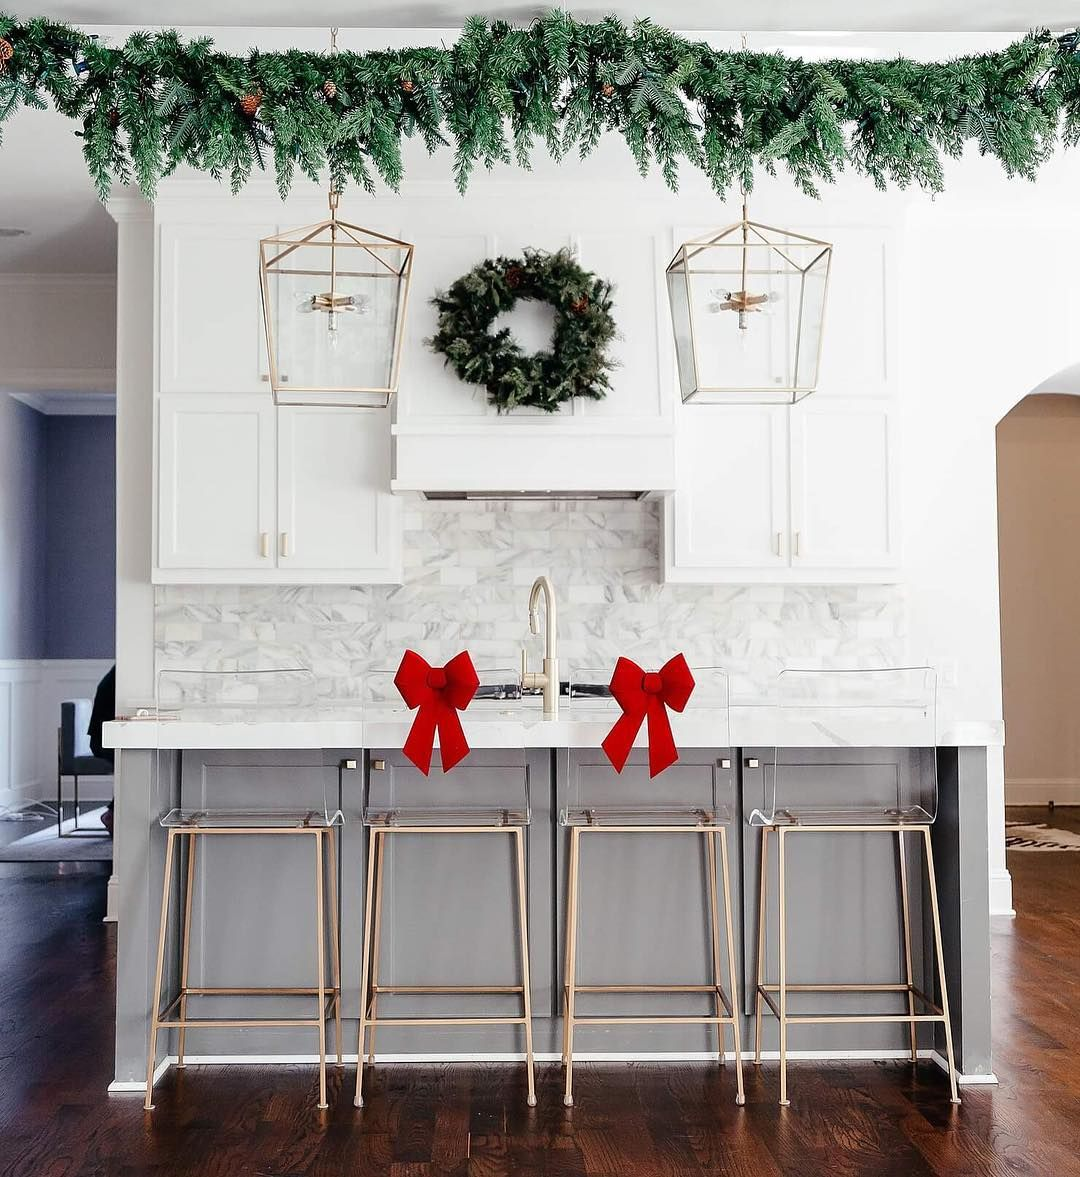 10 9k Likes 216 Comments Brightontheday Com Brightonkeller On Instagram Holiday Details Got My Fire On And Christmas Home Decor Holiday Details